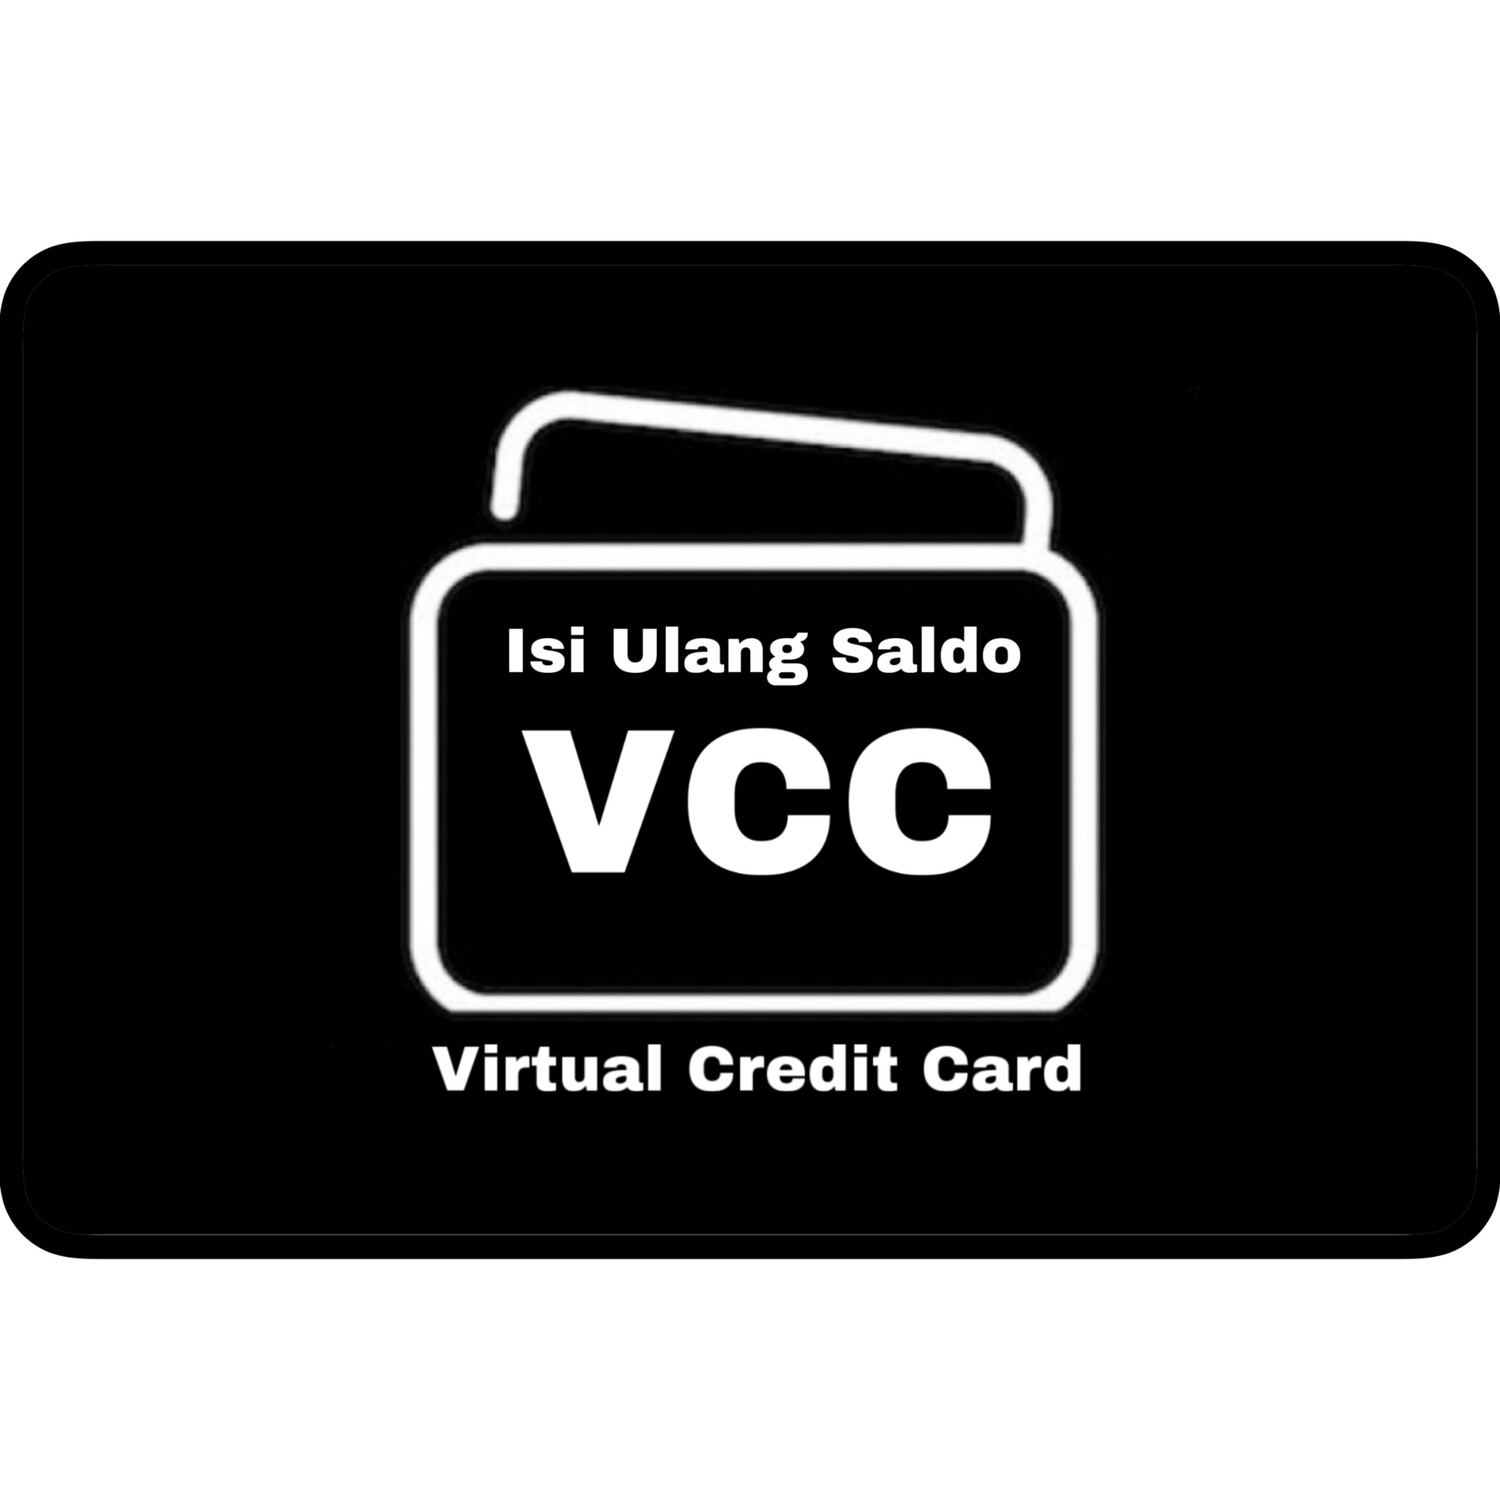 Isi Ulang Saldo Virtual Credit Card (VCC) Indonesia